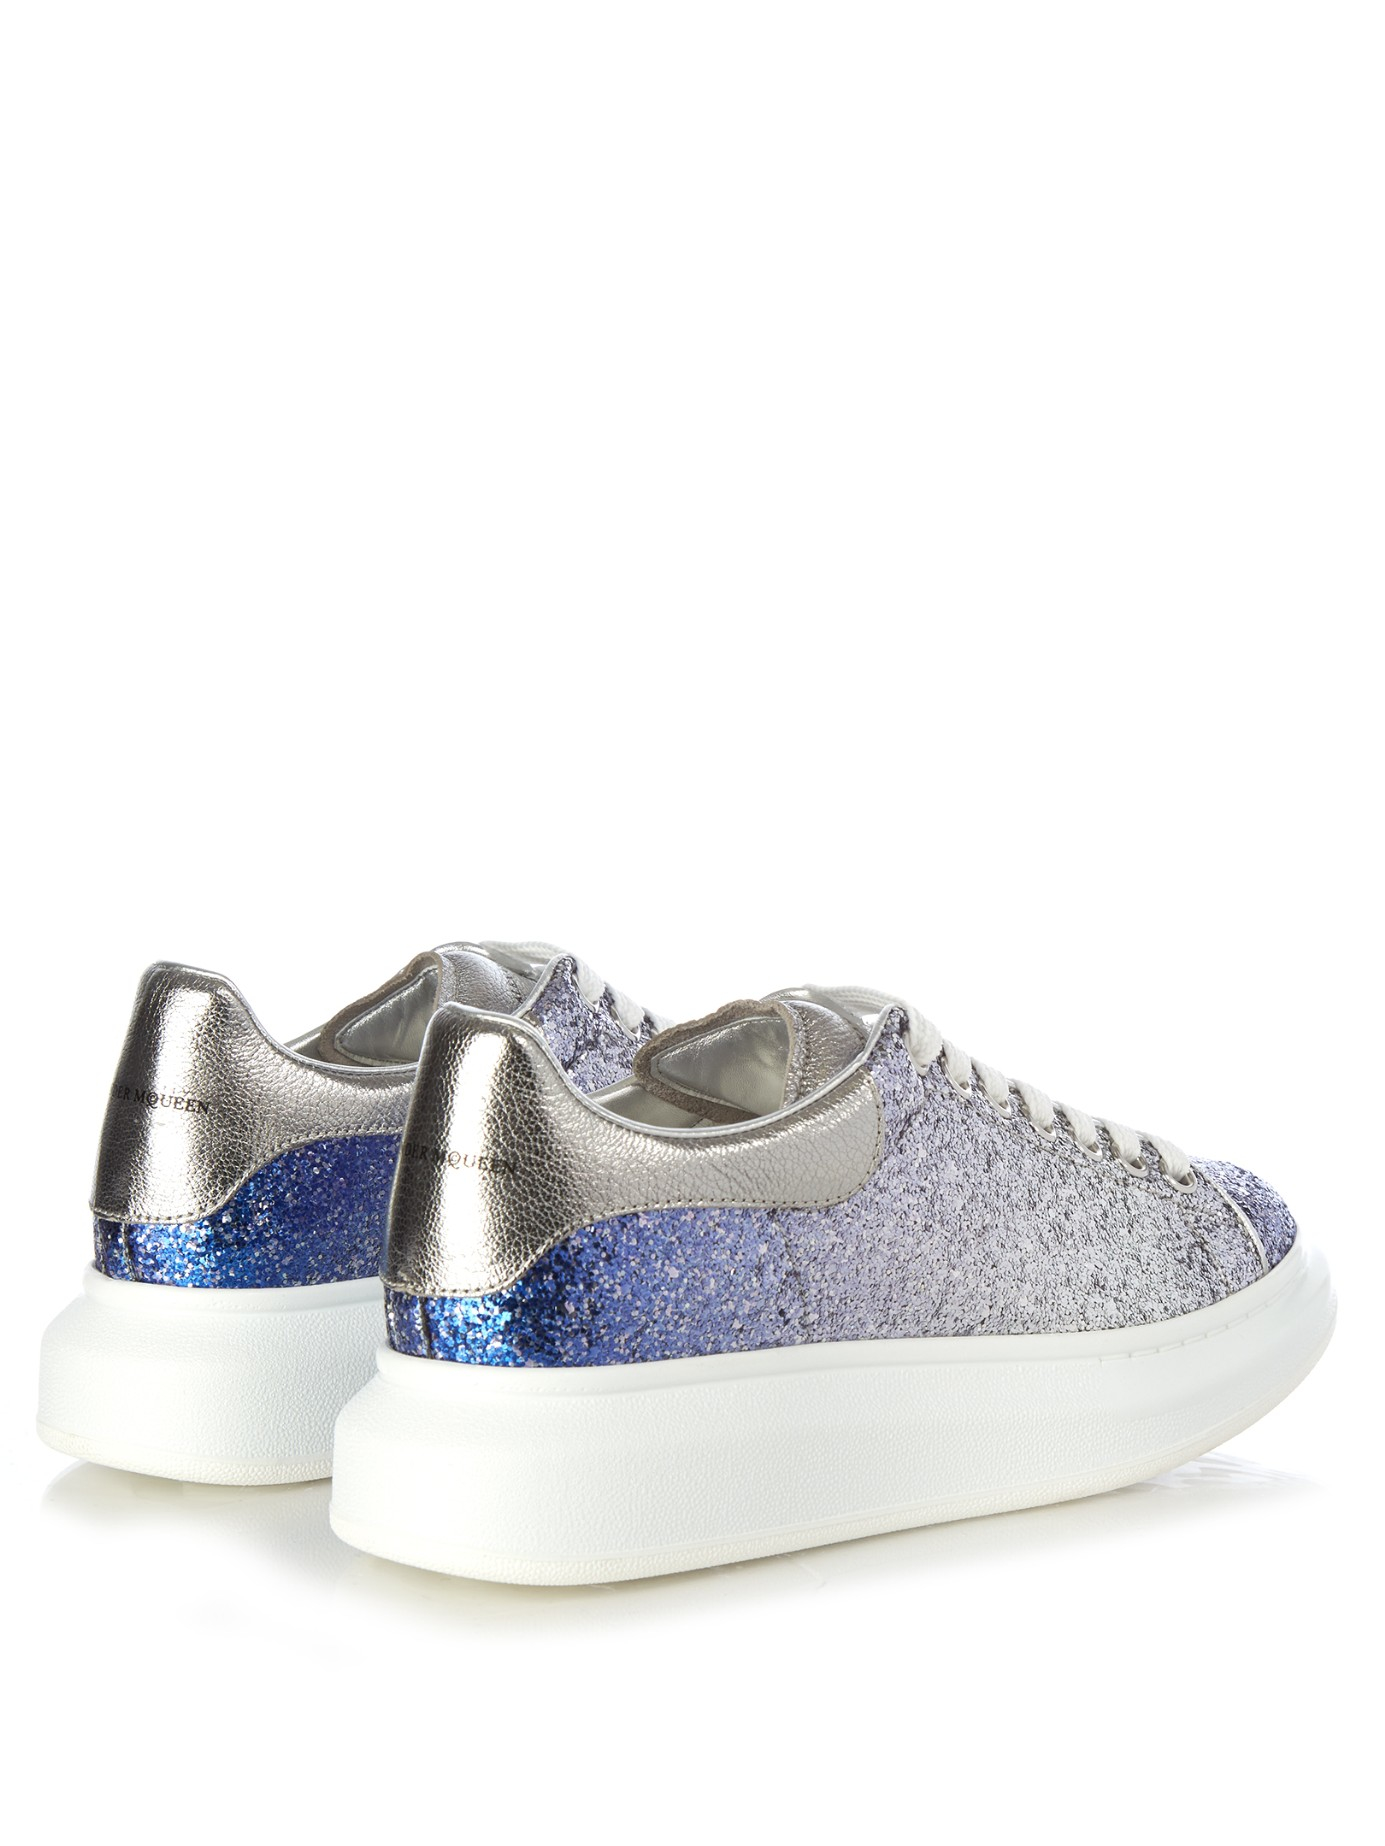 alexander mcqueen glittered leather sneakers in blue lyst. Black Bedroom Furniture Sets. Home Design Ideas